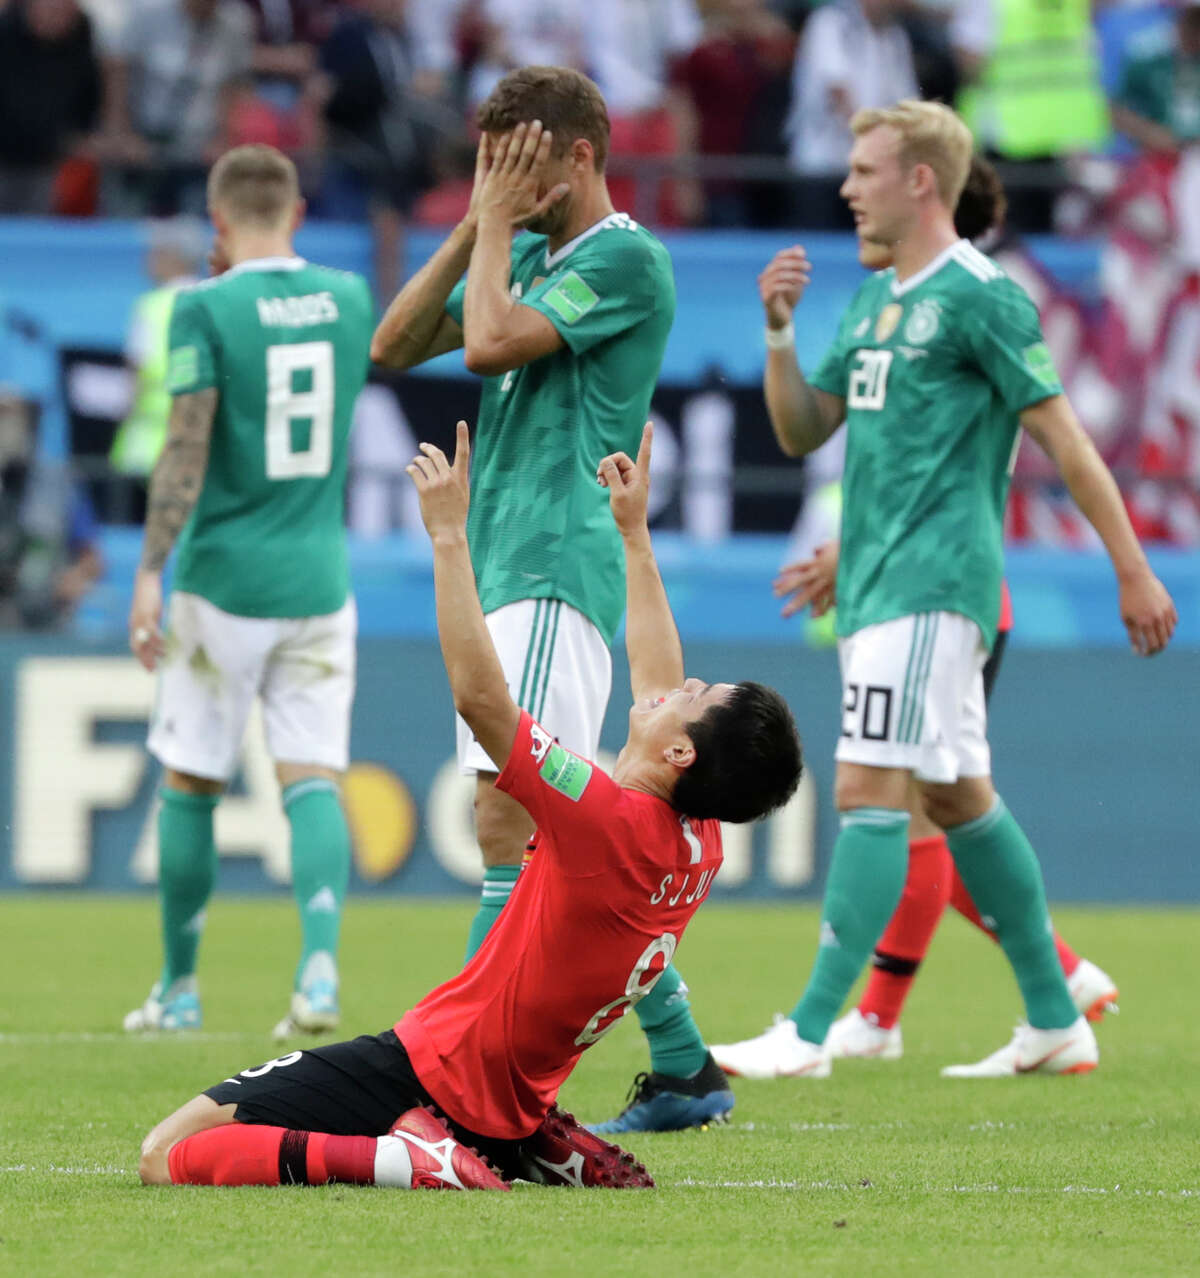 Germany's players walk off the pitch as South Korea's Ju Se-jong, front celebrates after the group F match between South Korea and Germany, at the 2018 soccer World Cup in the Kazan Arena in Kazan, Russia, Wednesday, June 27, 2018. (AP Photo/Lee Jin-man)